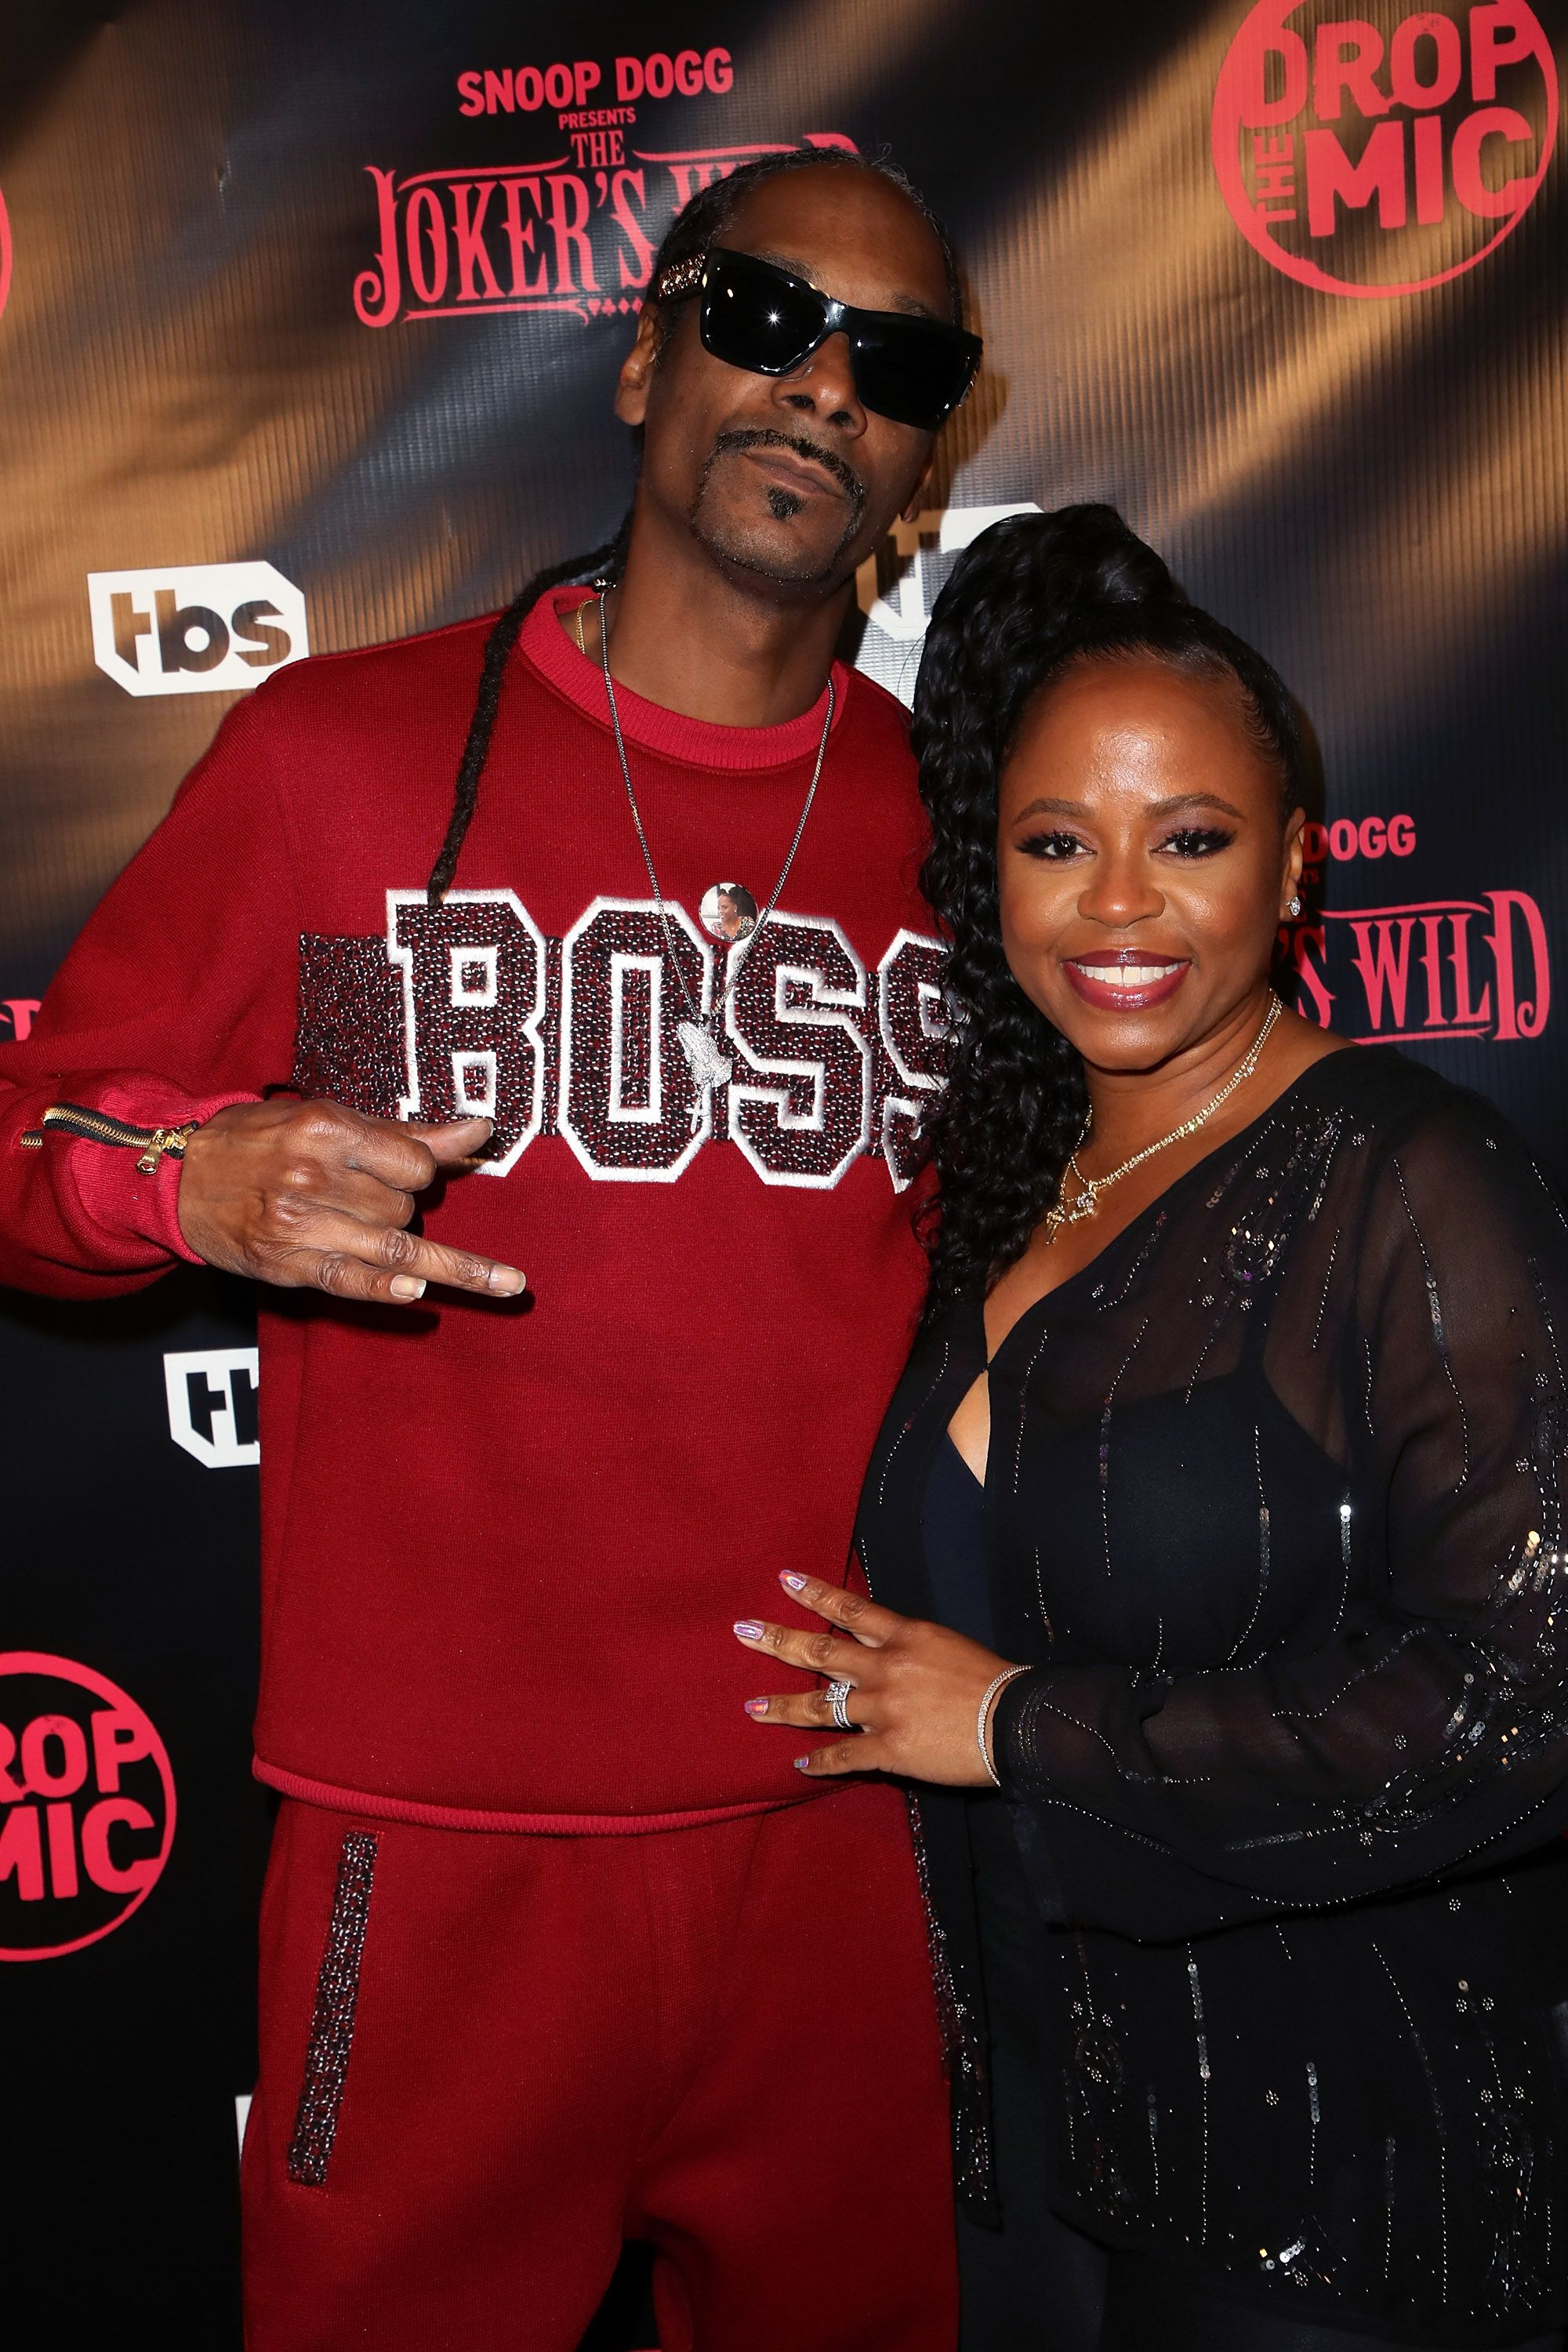 """Rapper Snoop Dogg and wife Shante Broadus at the premiere for TBS's """"Drop The Mic"""" and """"The Joker's Wild"""" at The Highlight Room on October 11, 2017 in Los Angeles, California. 